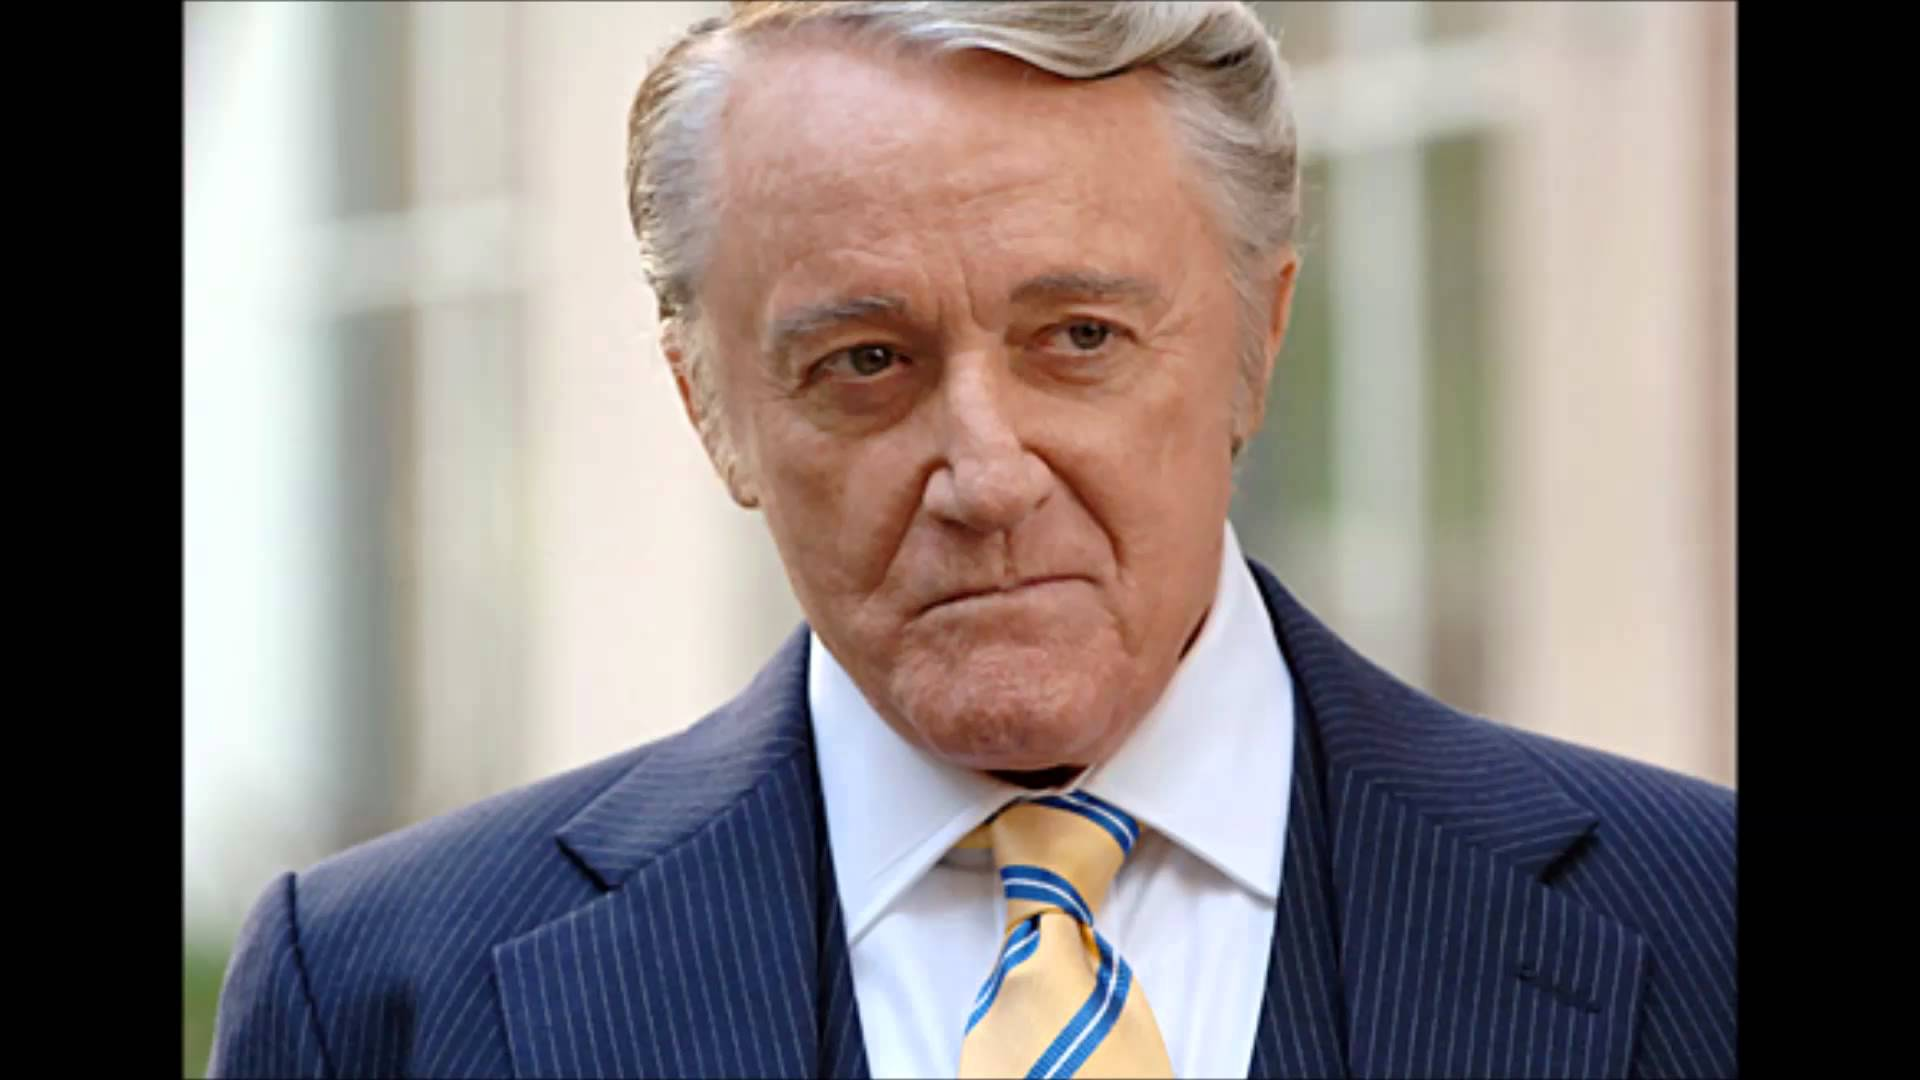 robert vaughn ncisrobert vaughn & the dead river angels, robert vaughn 2017, robert vaughn & the shadows, robert vaughn uncle, robert vaughn, robert vaughn imdb, robert vaughn young, robert vaughn wikipedia, robert vaughn law and order, robert vaughn height, robert vaughn 2014, robert vaughn filmography, robert vaughn a team, robert vaughn the protectors, robert vaughn zorro, robert vaughn net worth, robert vaughn ncis, robert vaughn columbo, robert vaughn today, robert vaughn and david mccallum